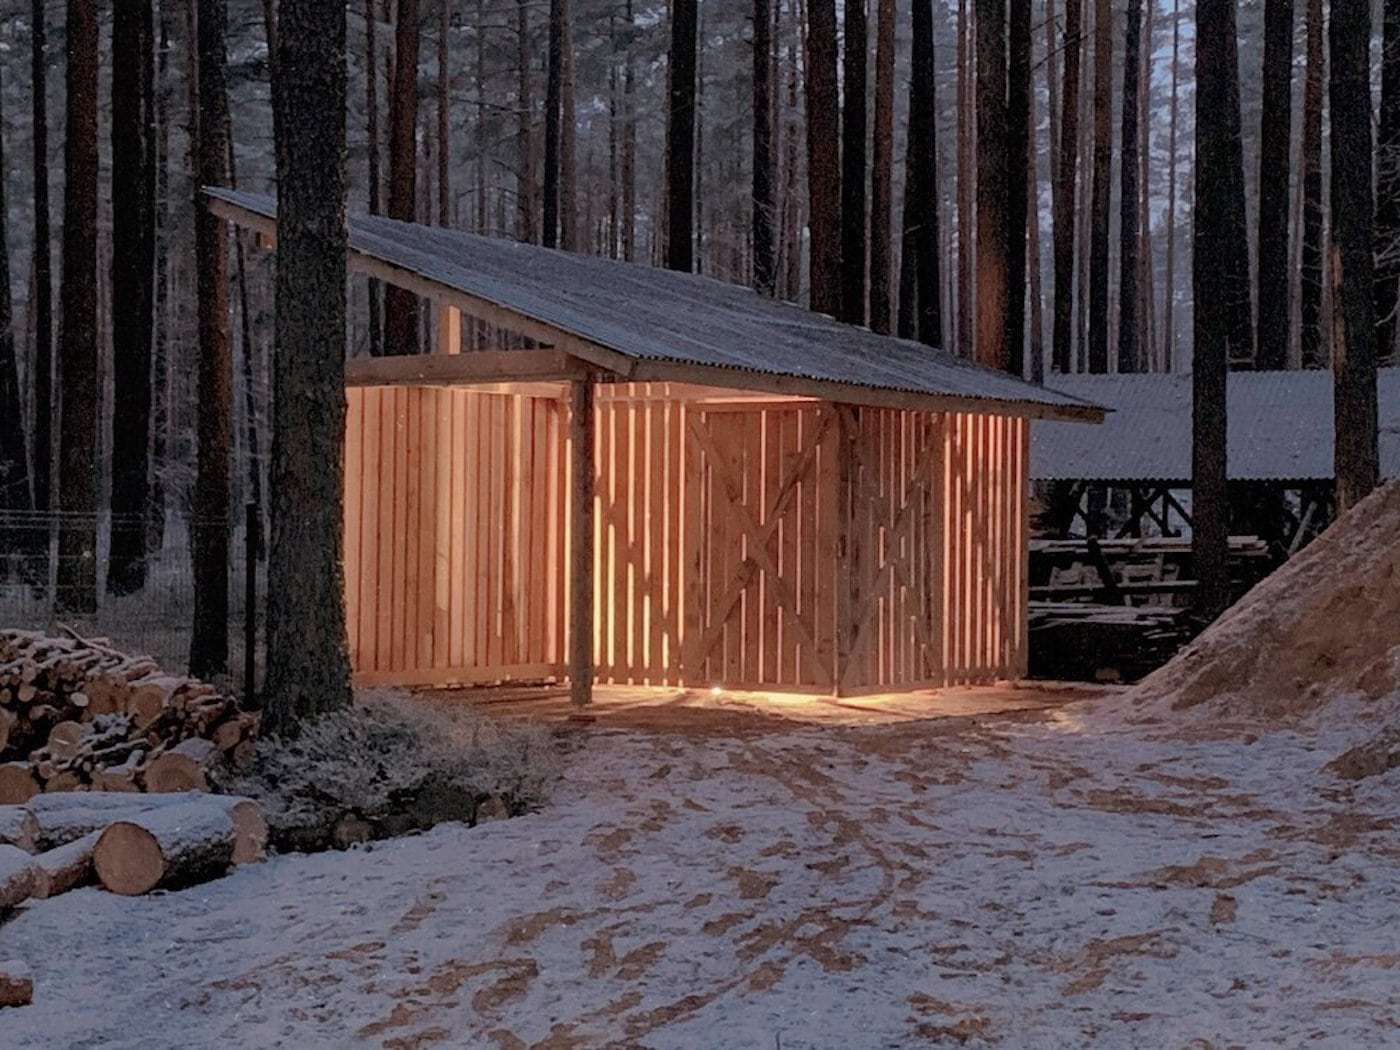 Timber shed in a forest illuminated at dusk